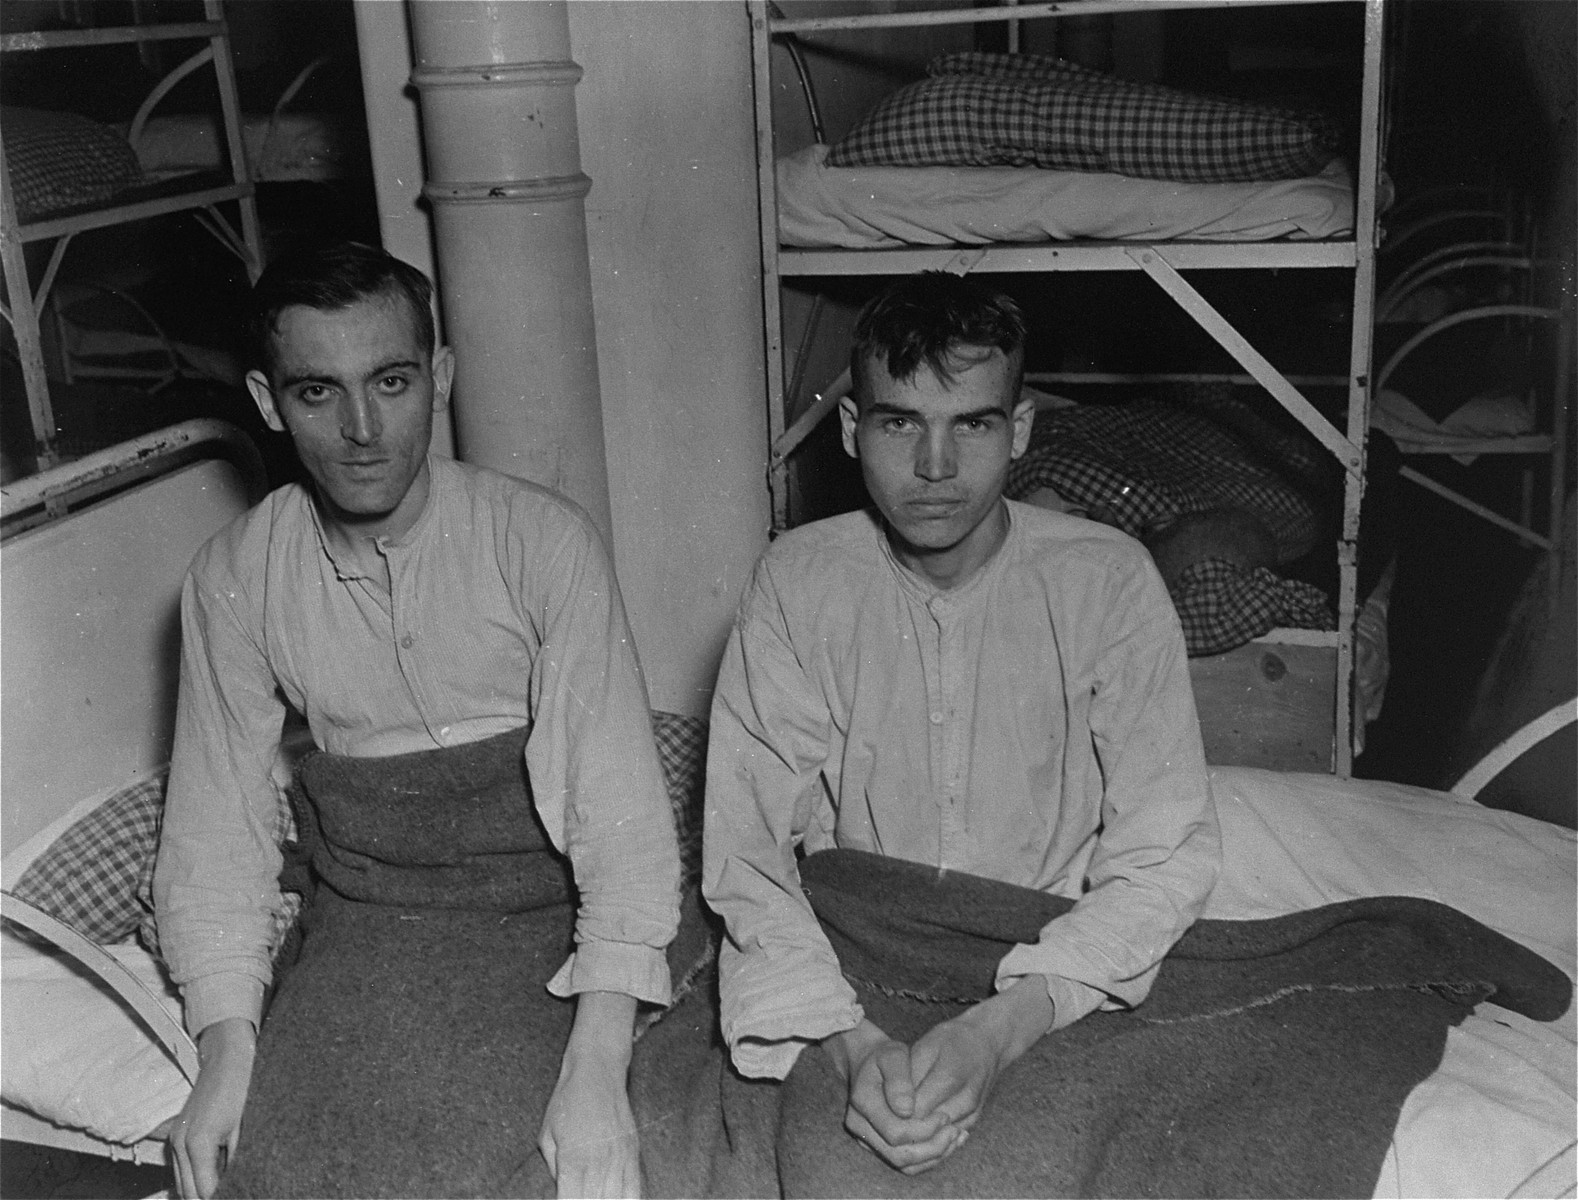 Two SS survivors of the Hadamar Institute sit on a bed at the former euthanasia facility.   These German SS had been committed to Hadamar after suffering mental breakdowns in the last year of the war.  The photograph was taken by an American military photographer soon after the liberation.